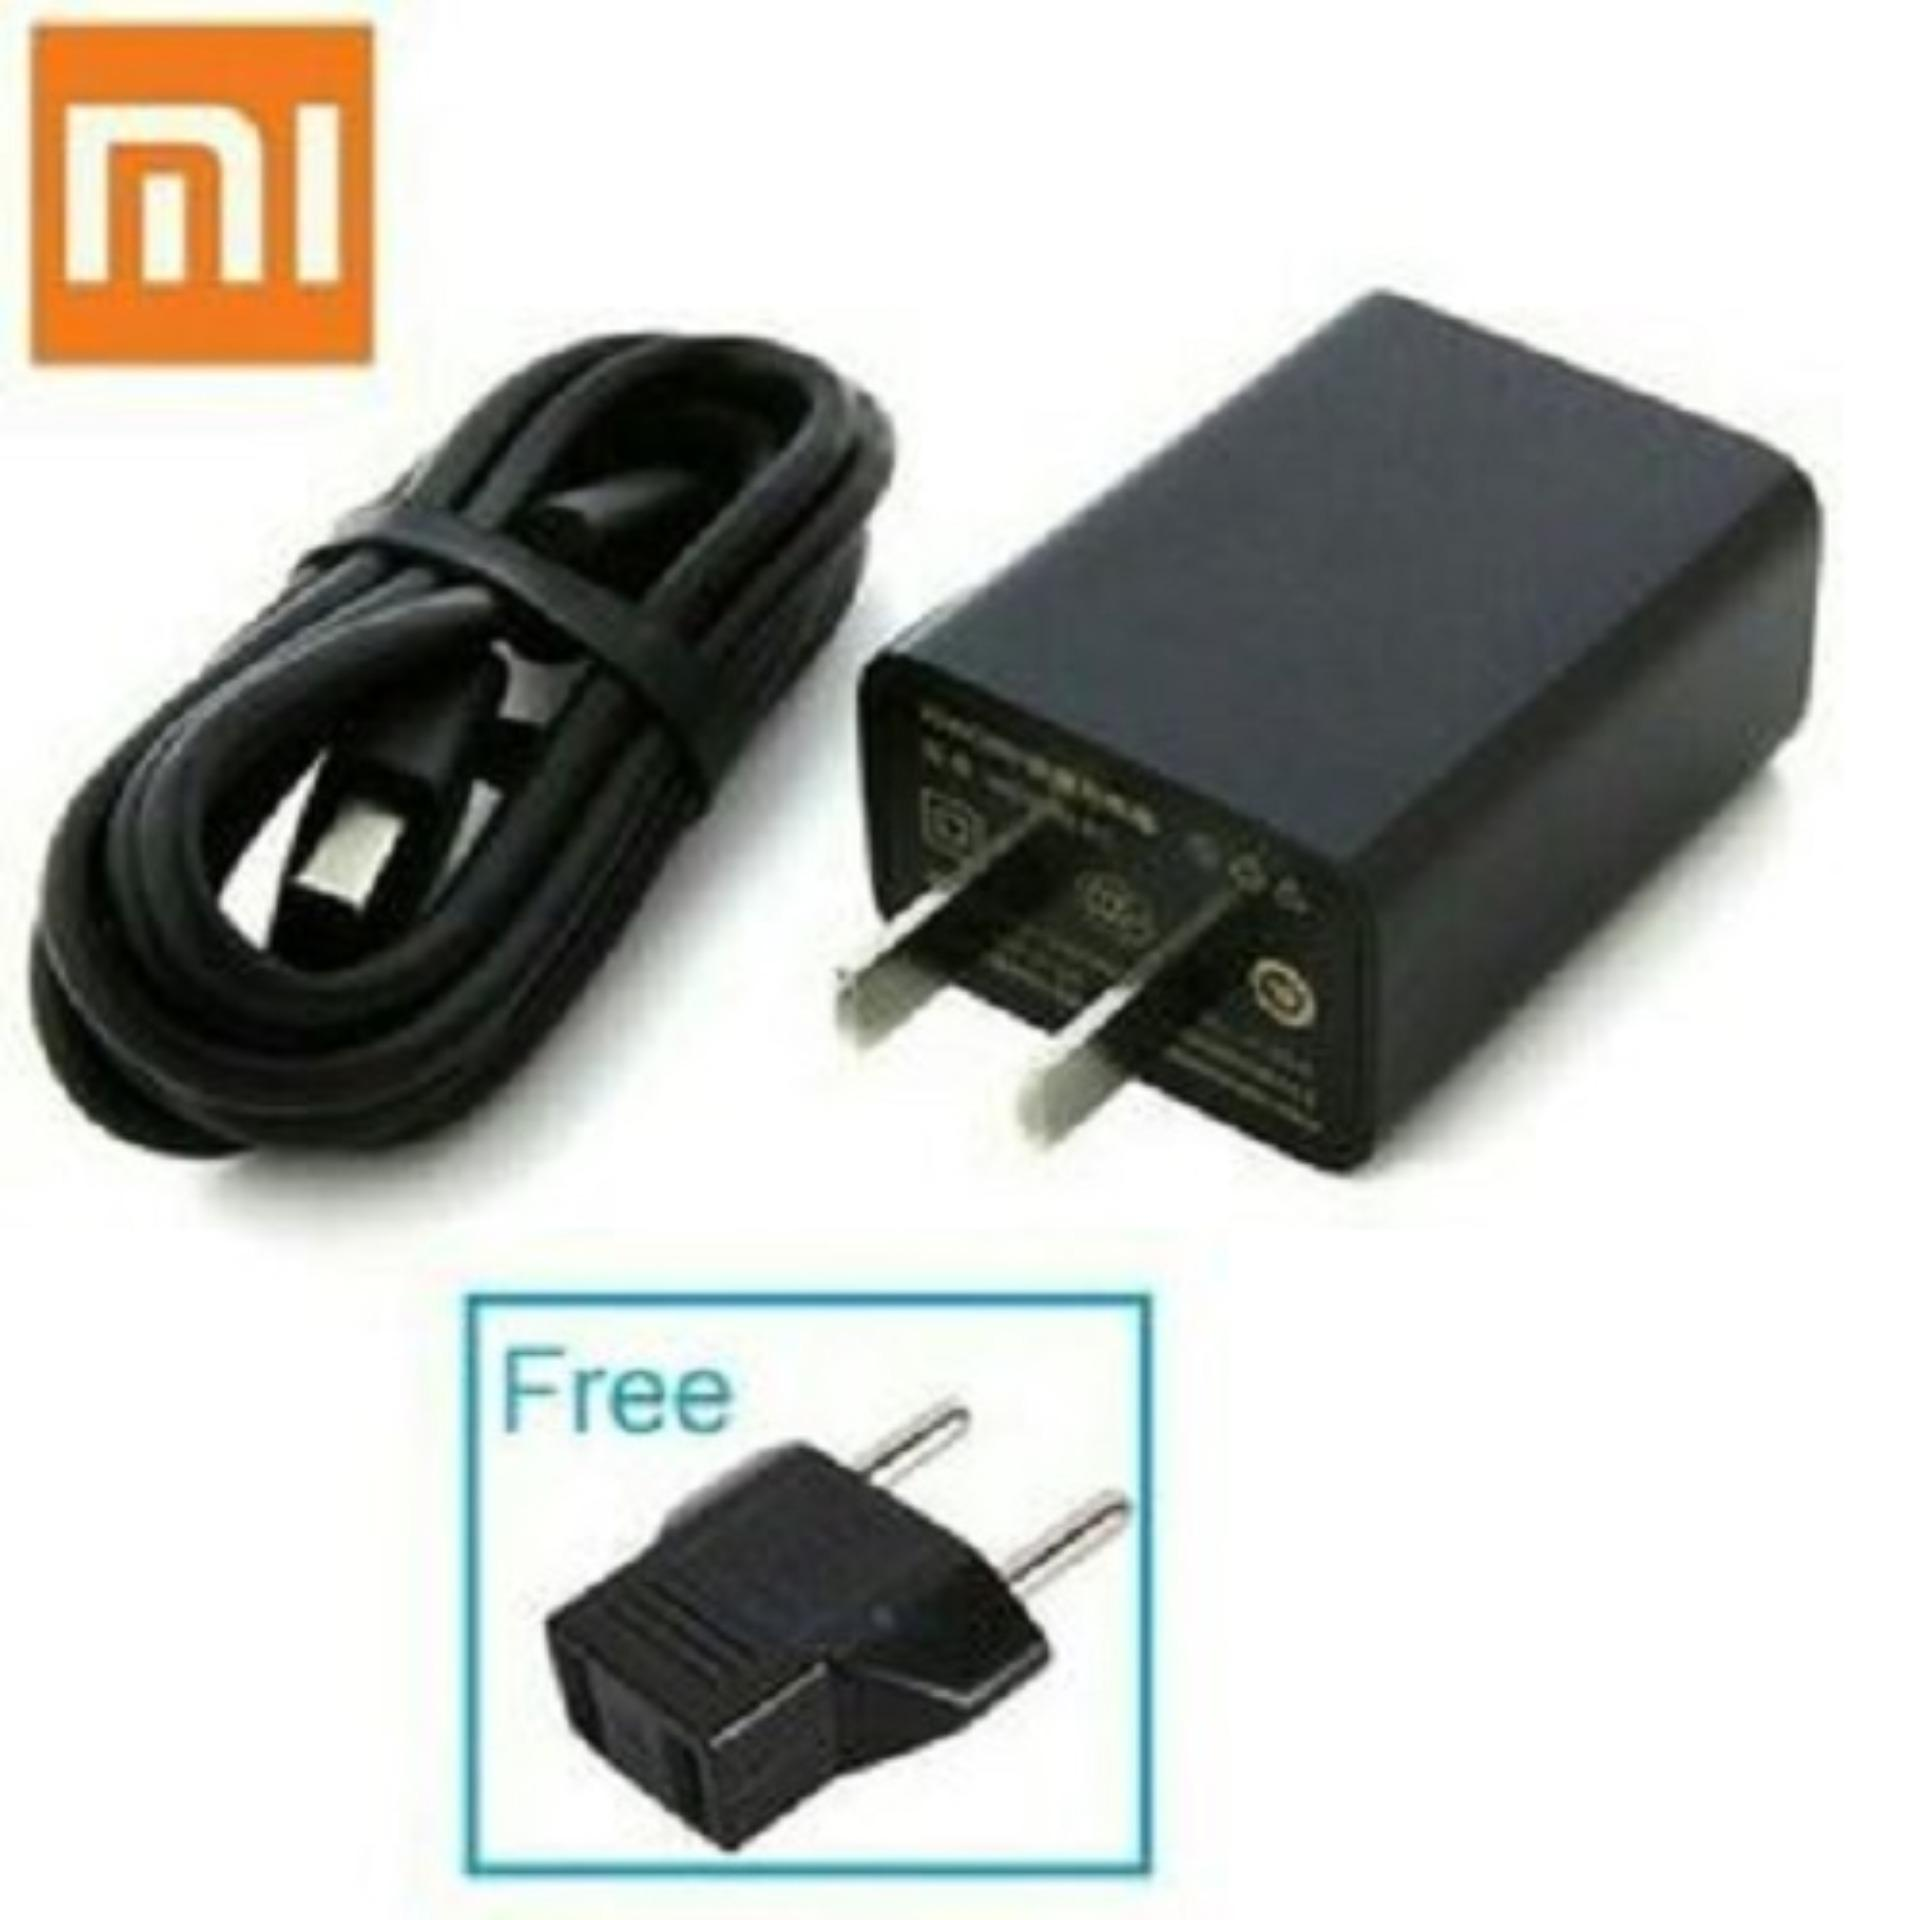 Charger For Xiaomi Redmi Note Micro USB 2A Charger - HITAM - bisa untuk Sony Xperia Z Ultra Z1 Z1s Z2 ZL Z3 Z4 Z5 Compact Mini C C3 E T T2 Ultra T3 M M2 M4 Aqua Go ion X SP Sola